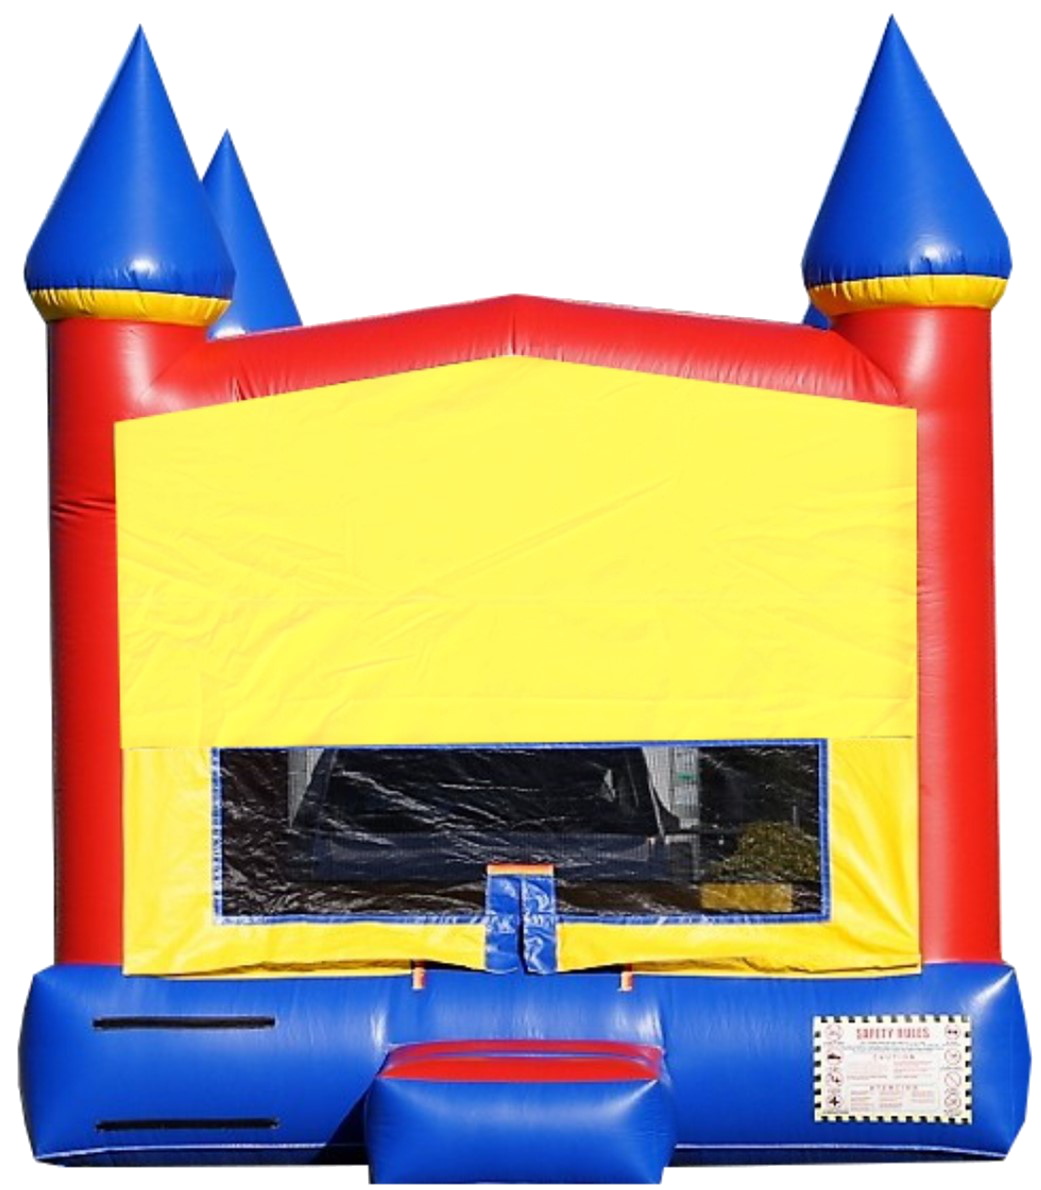 Inflatable bounce house rentals Nashville